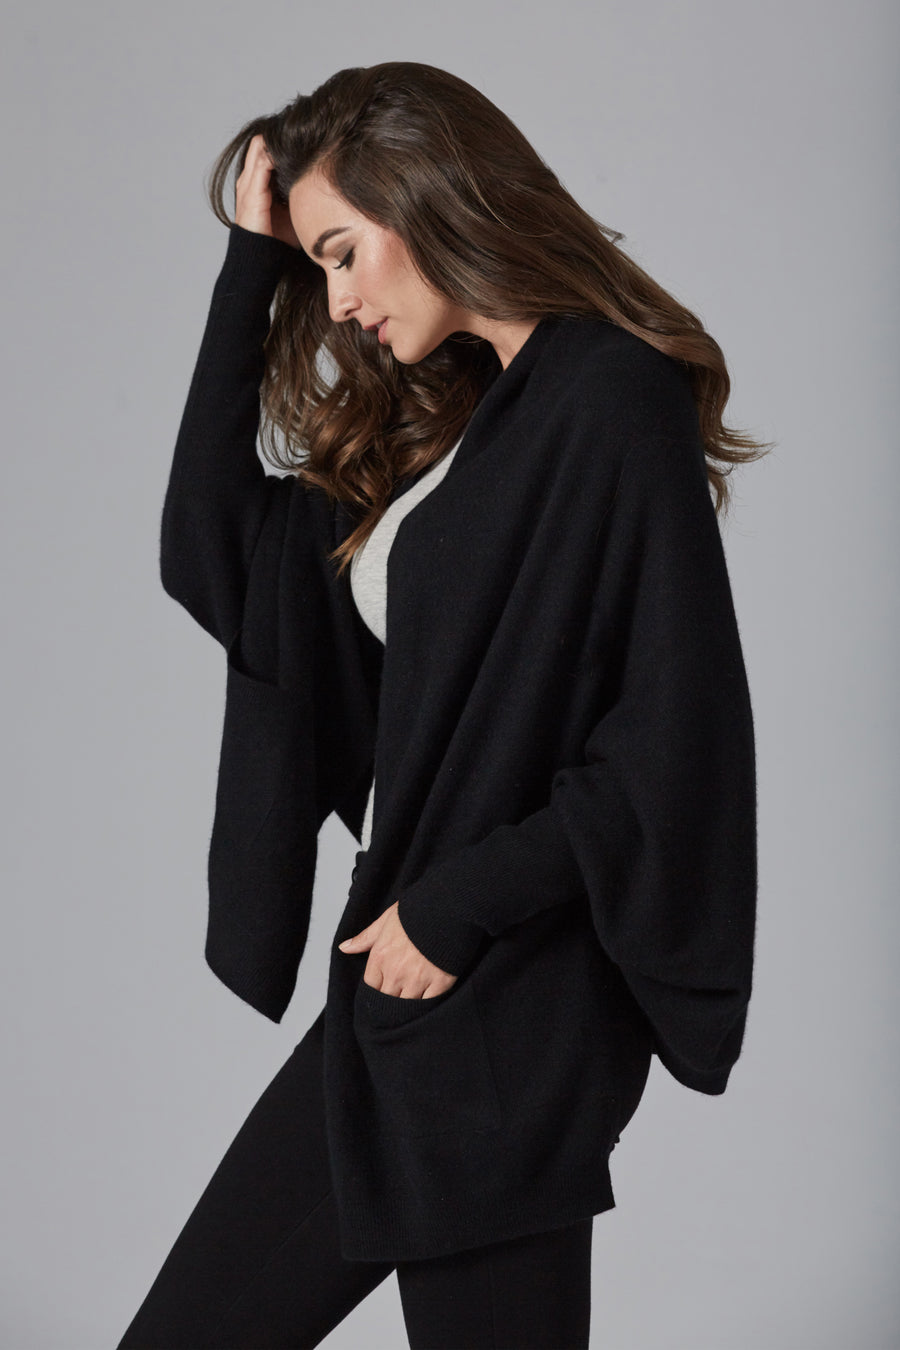 pine cashmere women's audrey multi wear 100% pure cashmere cardigan wrap black color